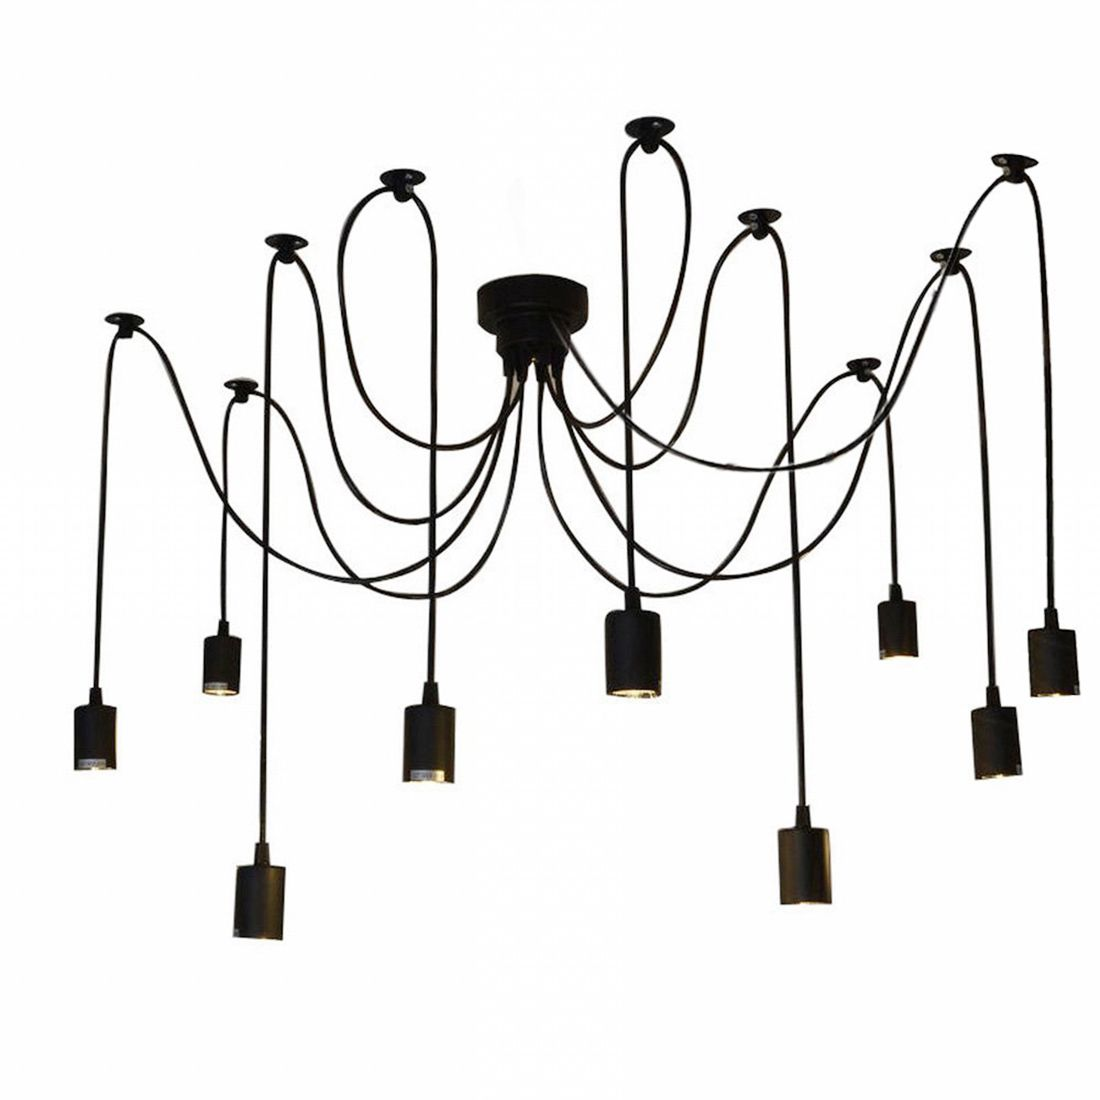 9 Lights E27 DIY Ceiling Spider Pendant Lamp Shade Light Antique Classic Adjustable Retro Chandelier Dining HallLighting Fixture 10 lights creative fairy vintage edison lamp shade multiple adjustable diy ceiling spider pendent lighting chandelier 10 ligh